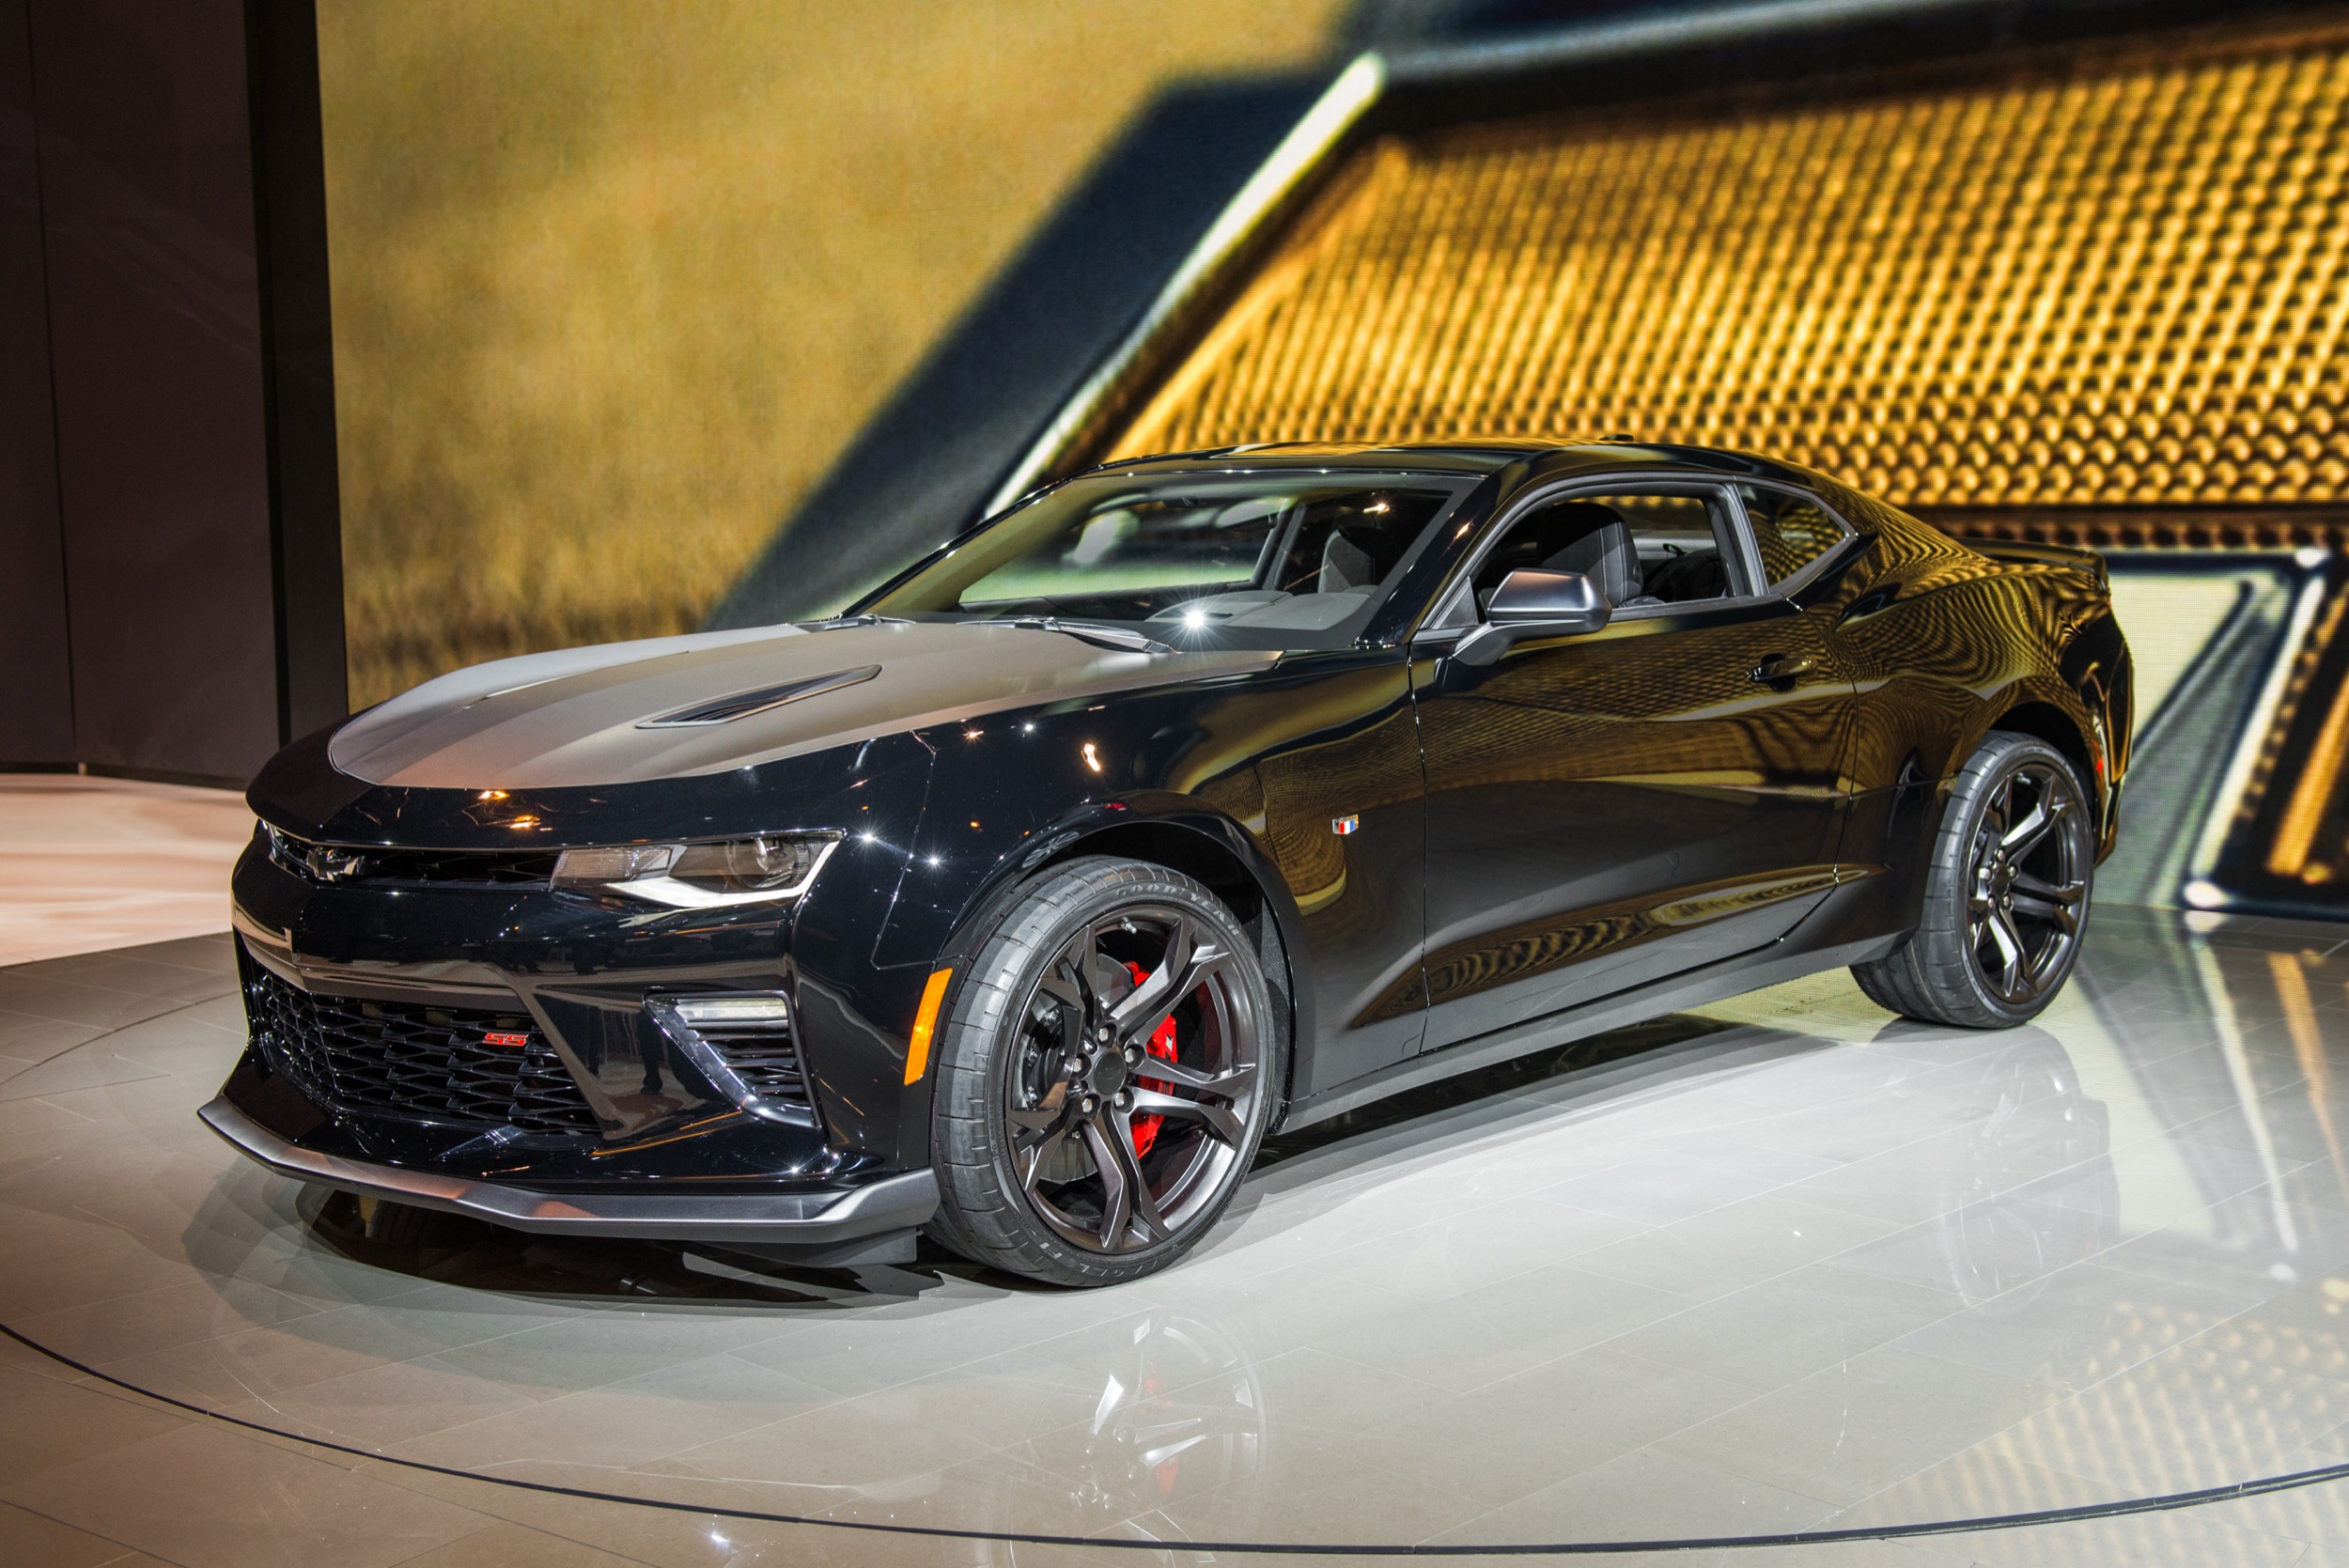 2017 Chevrolet Camaro 1ss >> Top 2016 Chicago Auto Show Debuts - Exotic Car List